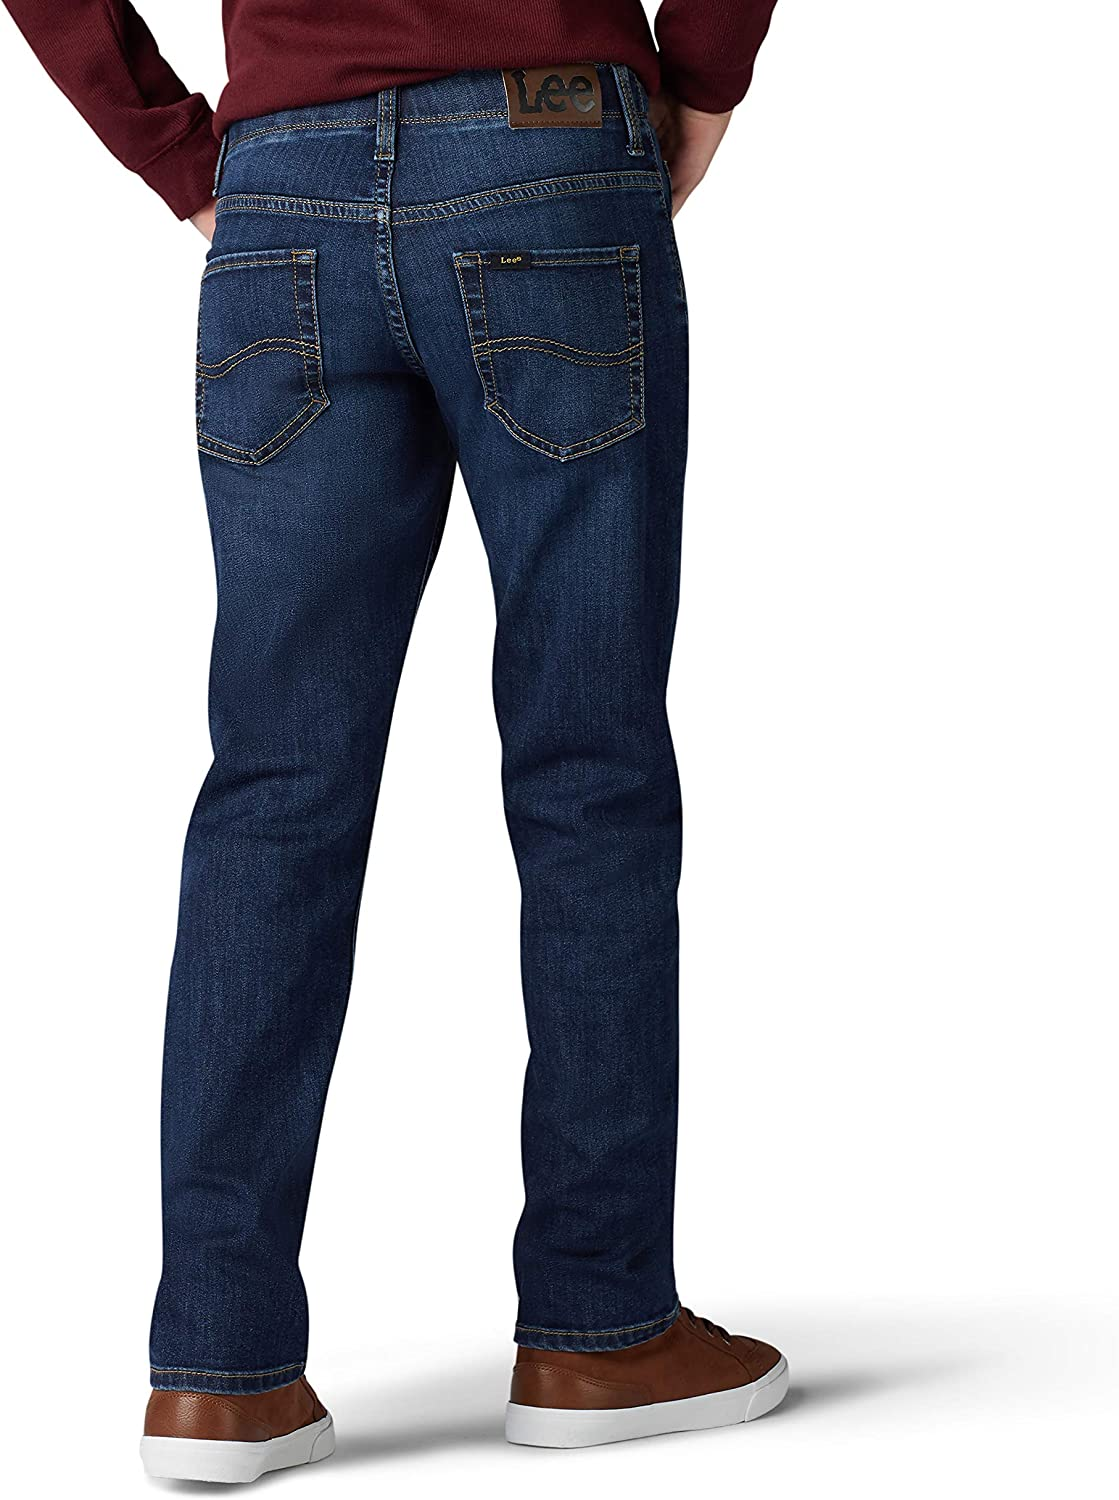 LEE Boys Performance Series Extreme Comfort Straight Fit Jean